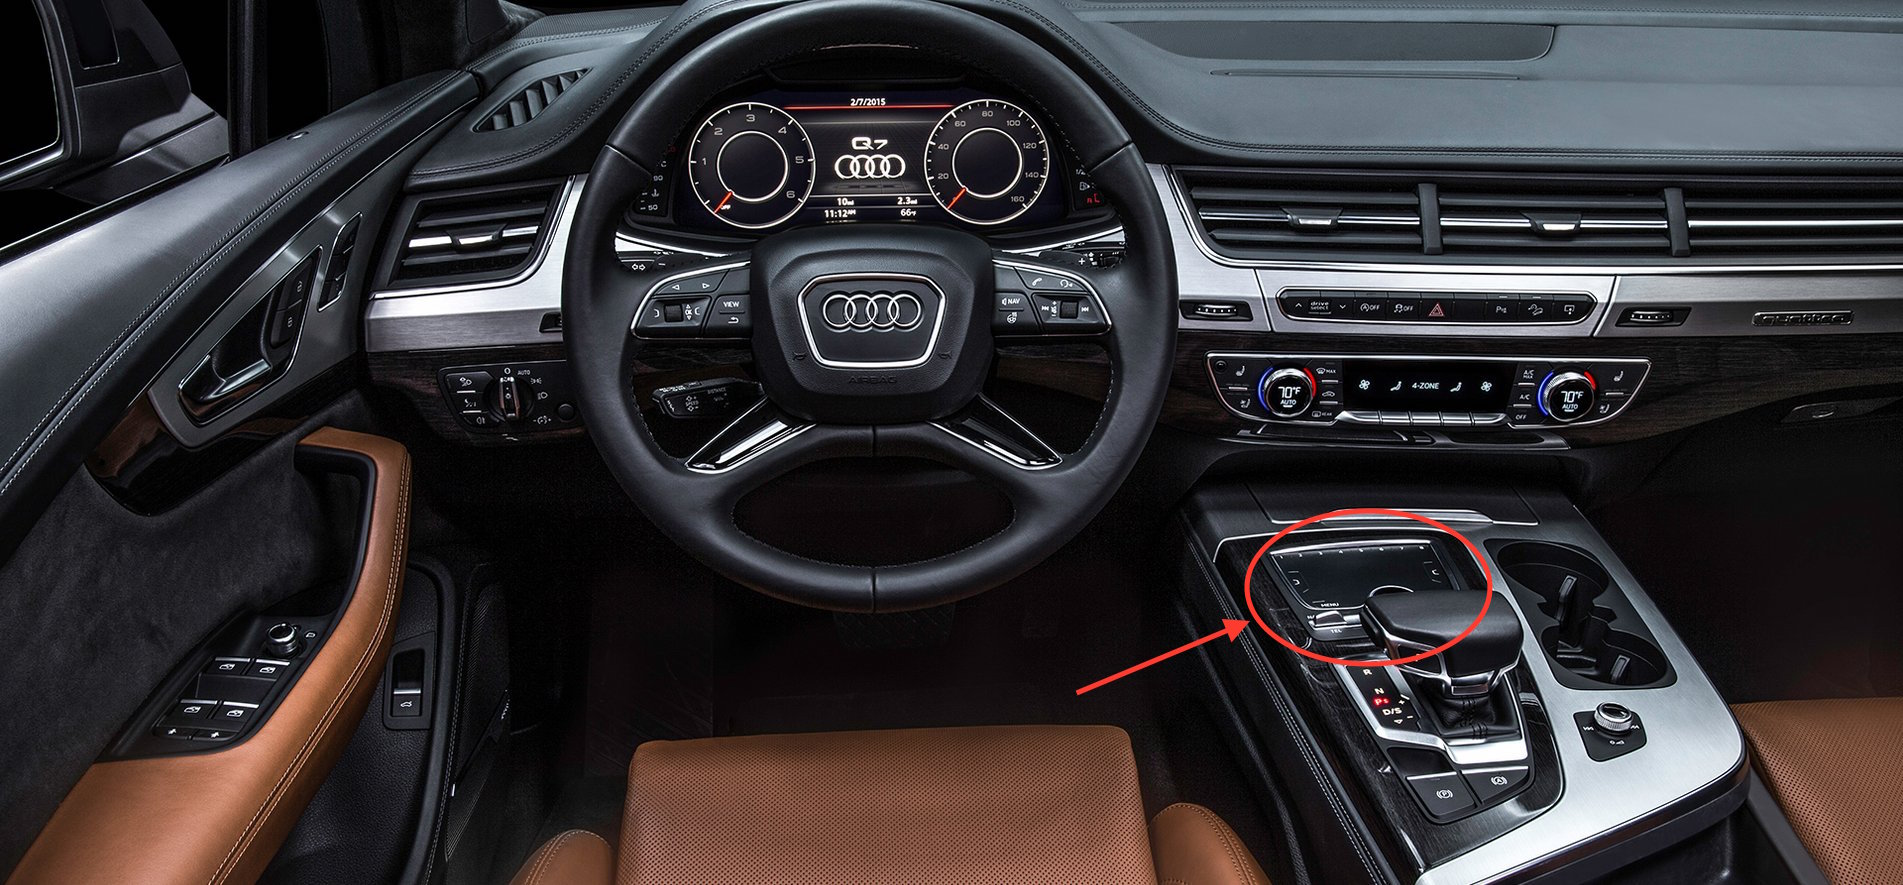 Oil Reset Blog Archive 2017 Audi Q7 Interior